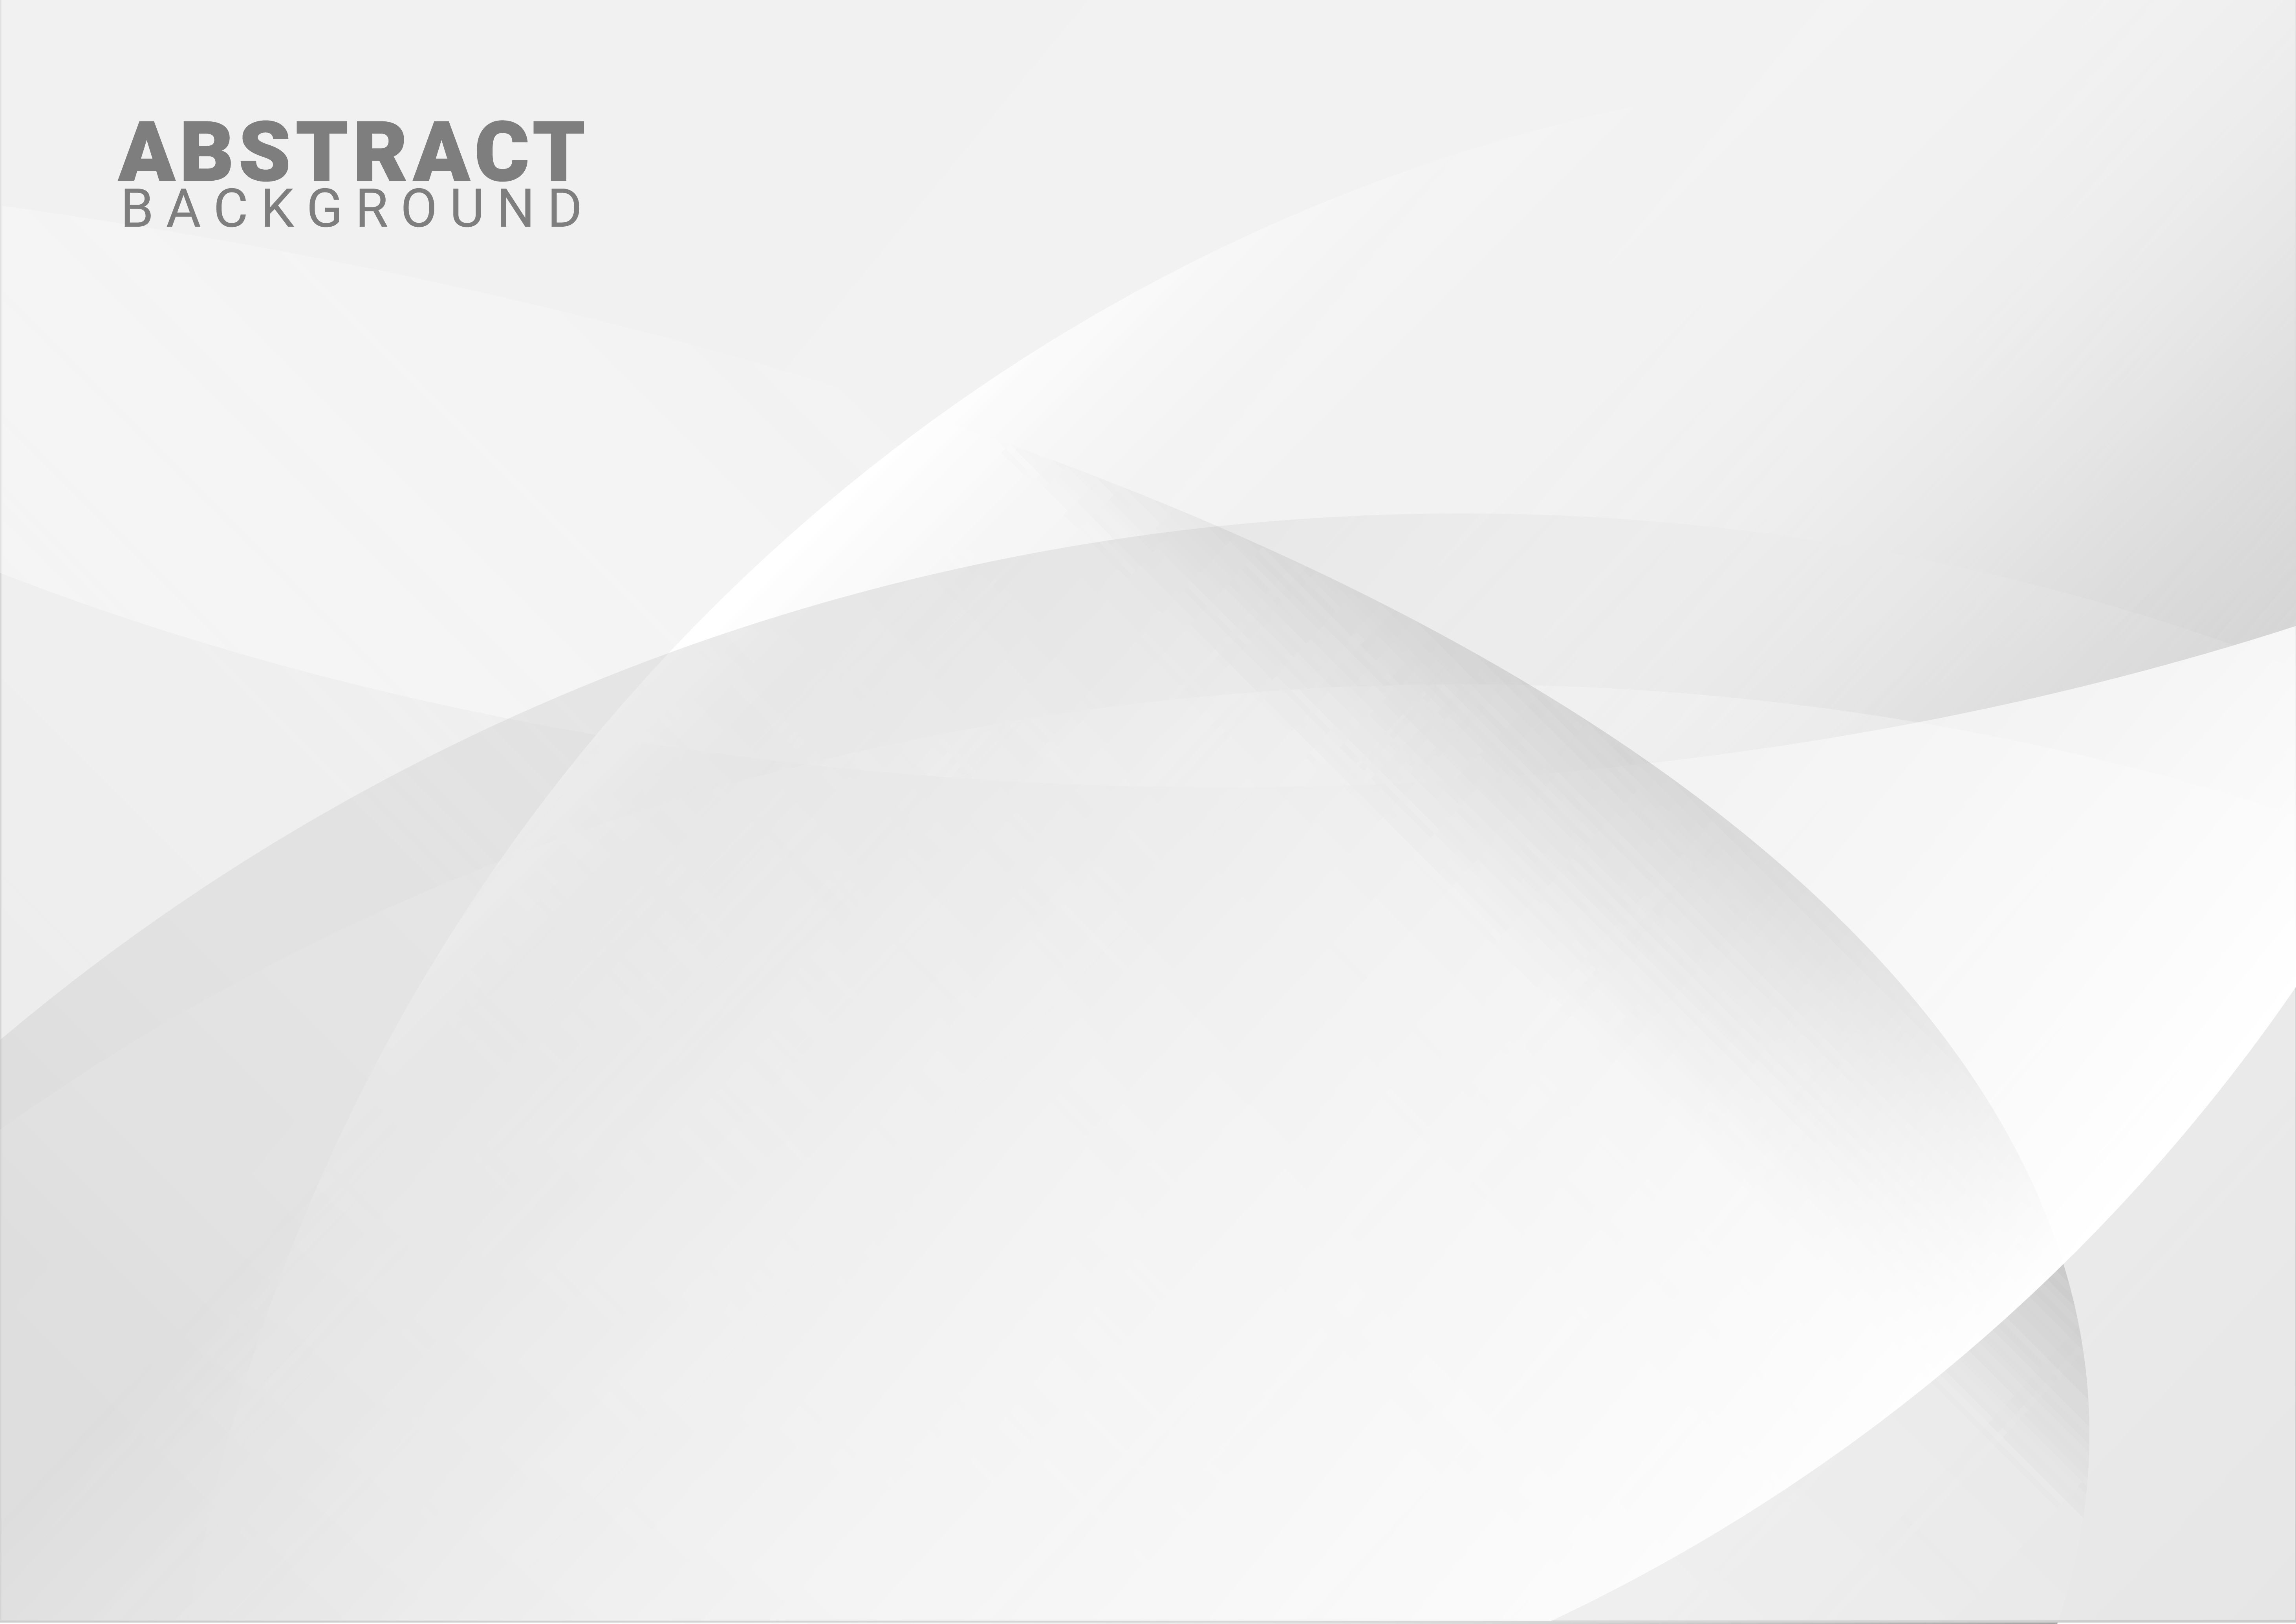 Abstract White Background With Smooth Lines Download